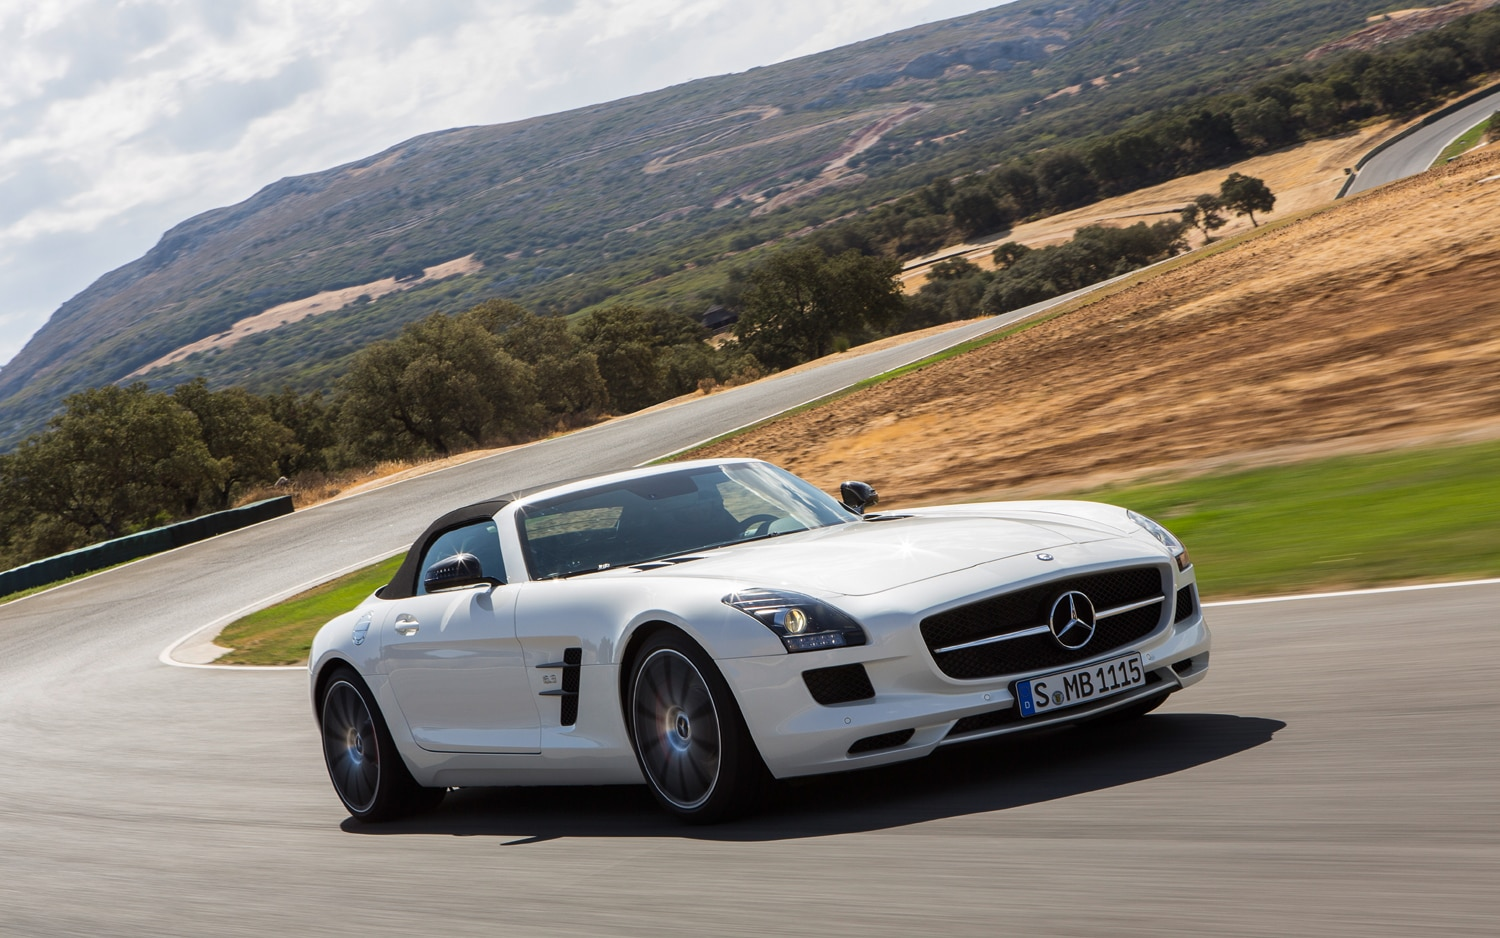 2013 Mercedes Benz SLS AMG GT Roadster Front Three Quarter On Track 21